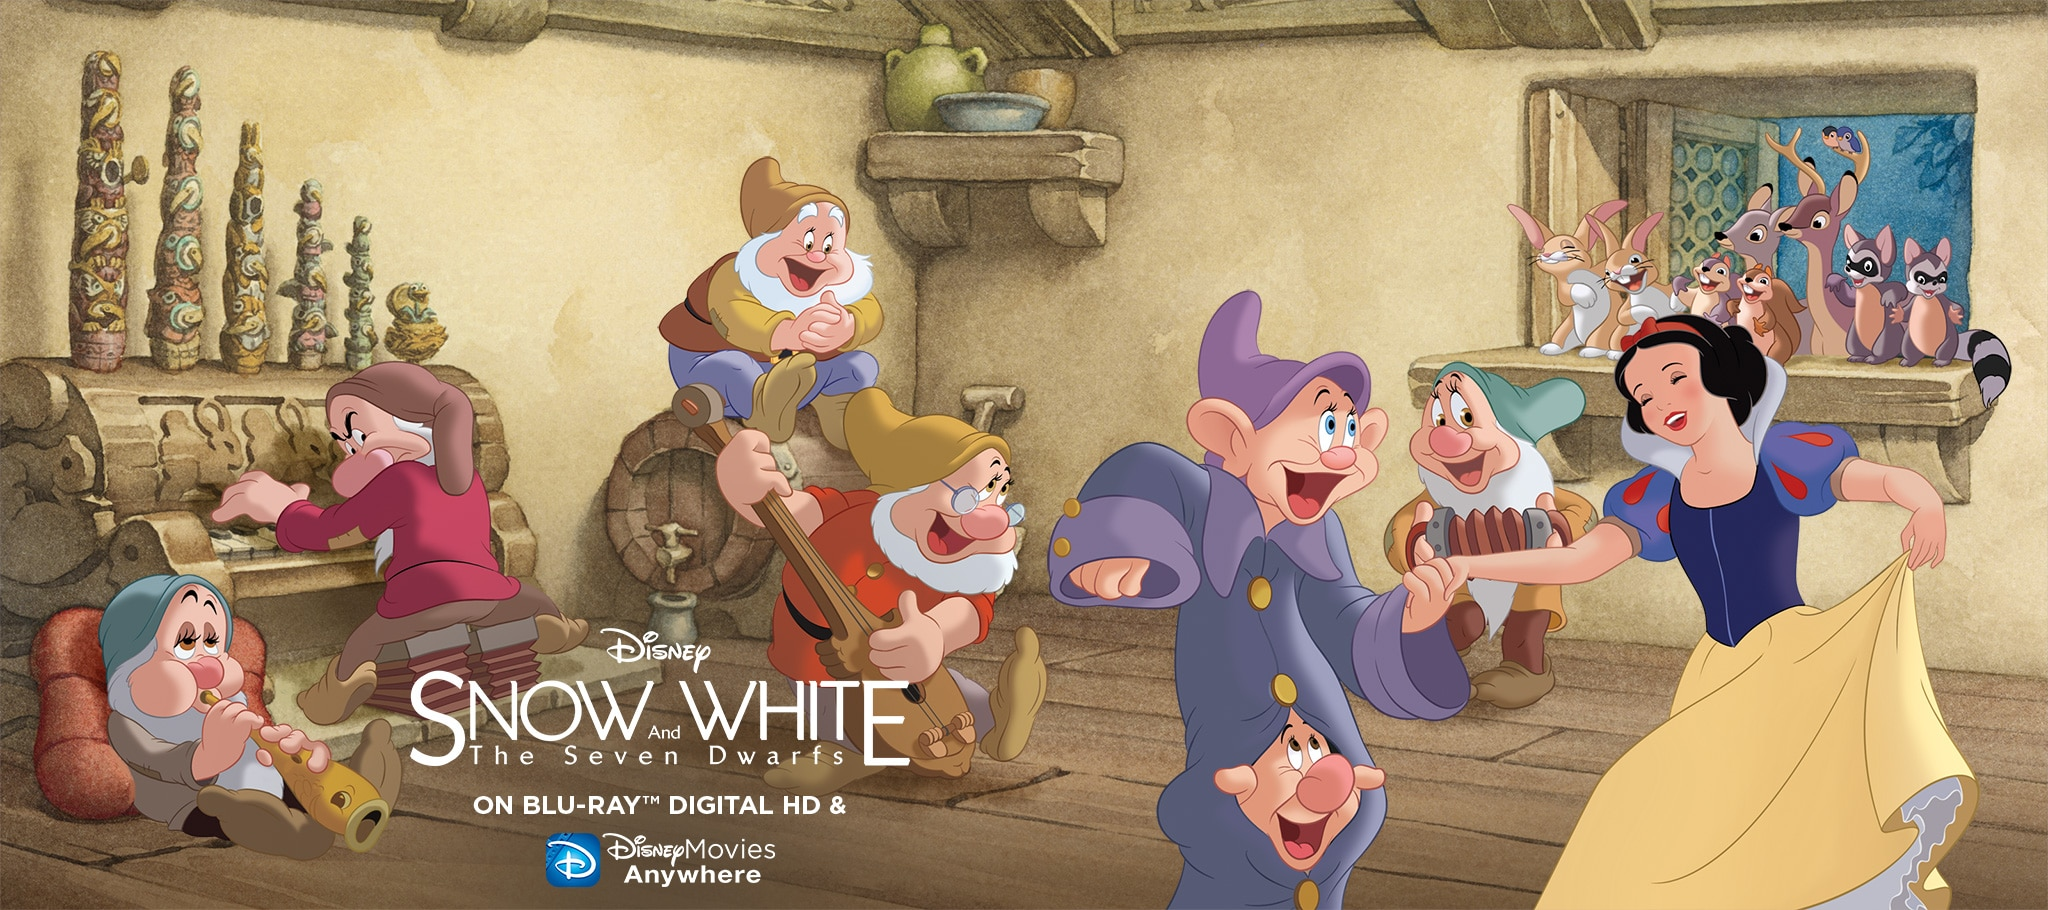 Snow white and the seven dwarfs movie  nsfw nasty chick